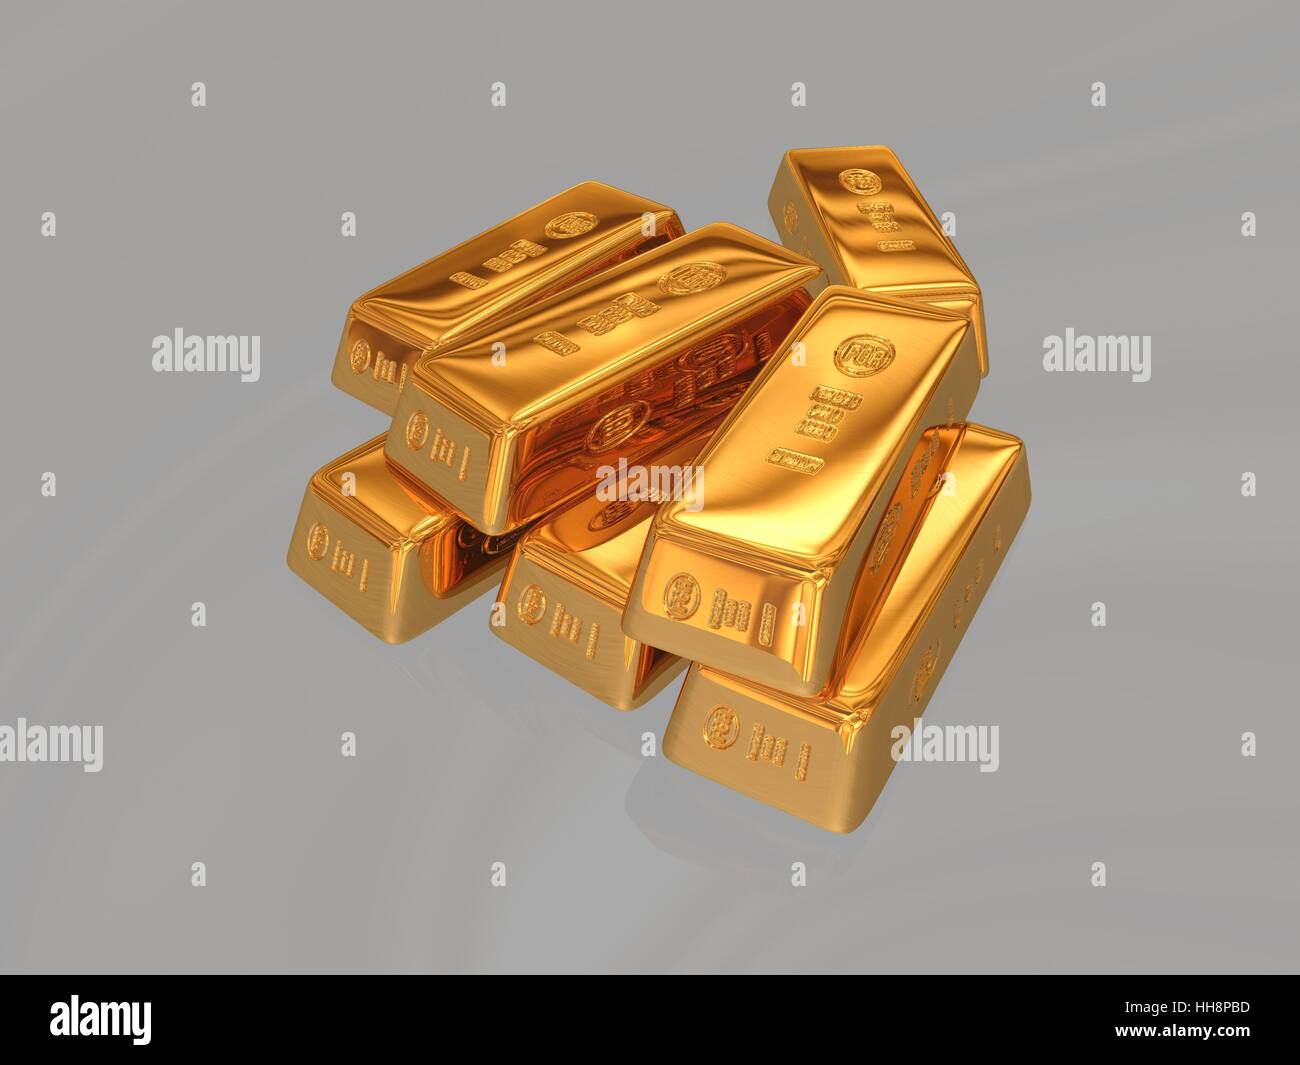 currency, metal, plant, crisis, gold coin, collector